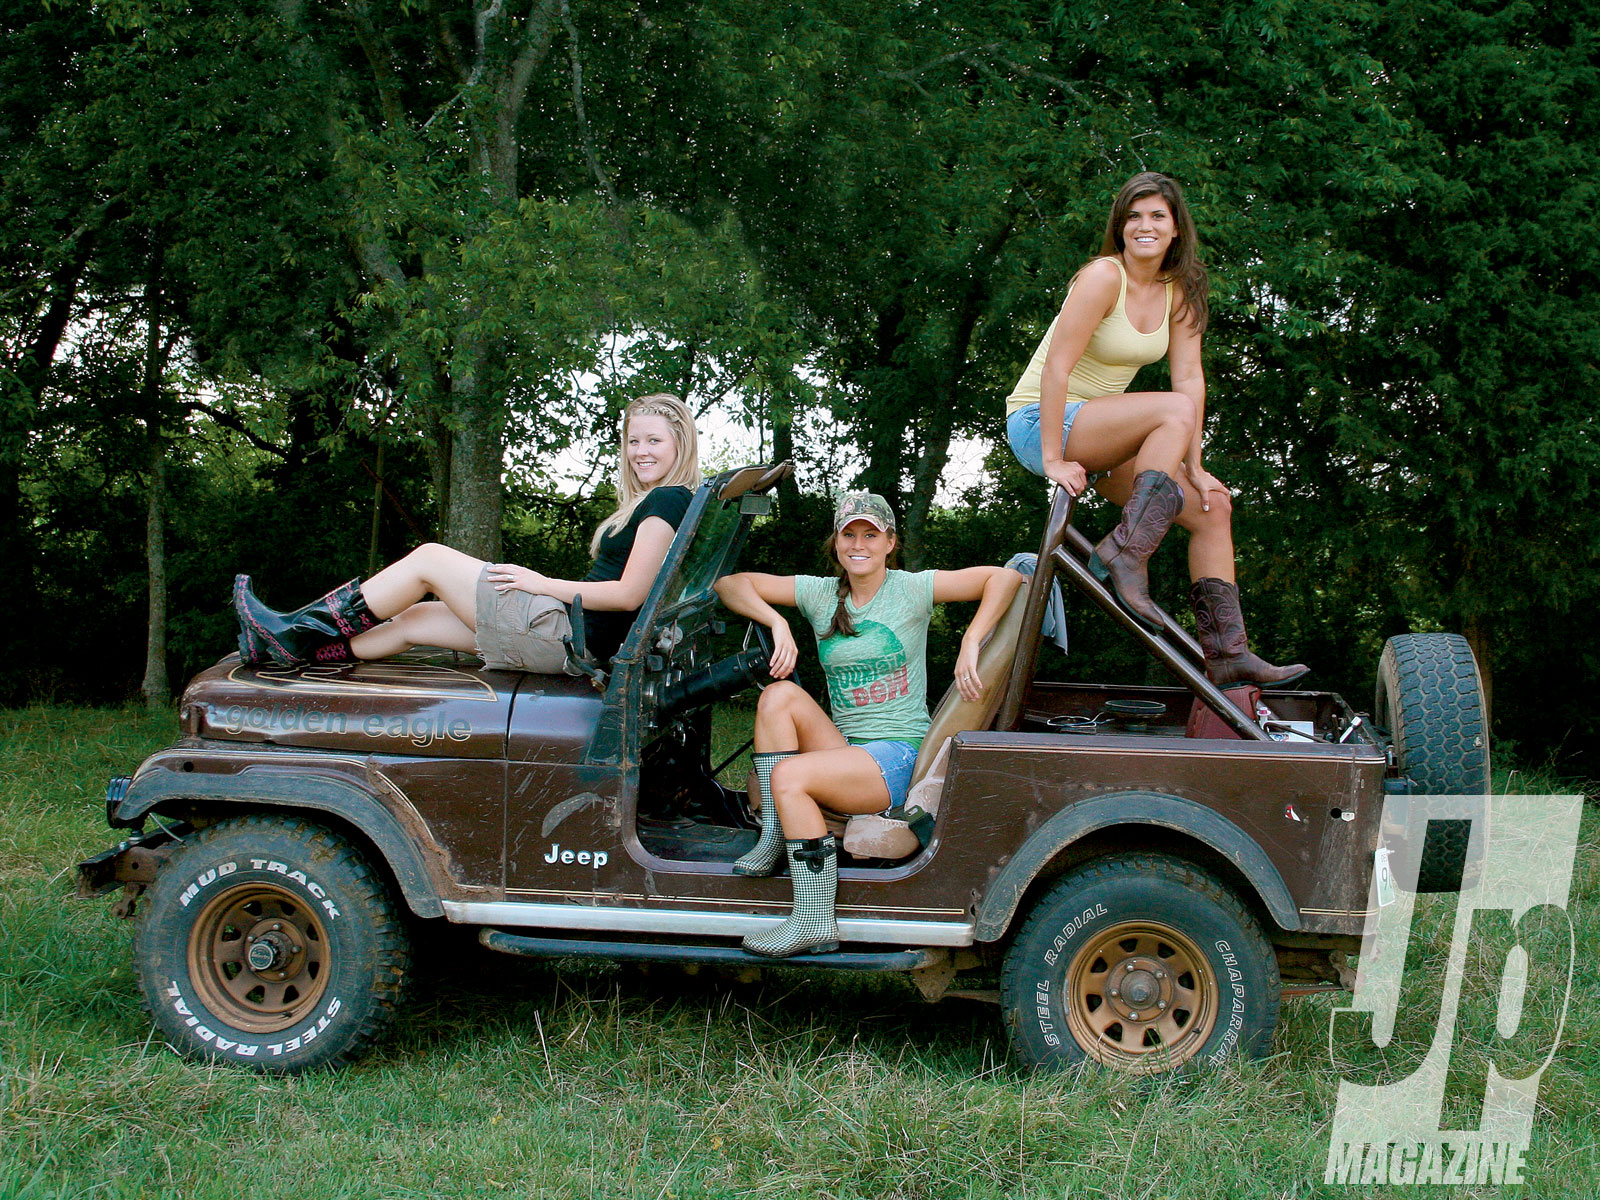 Jeep And Girl Wallpaper moreover Read moreover 2011 Civic si concept additionally Bryan Wood also Jeep Grand Cherokee Zj 10. on jeep grand wagoneer fun